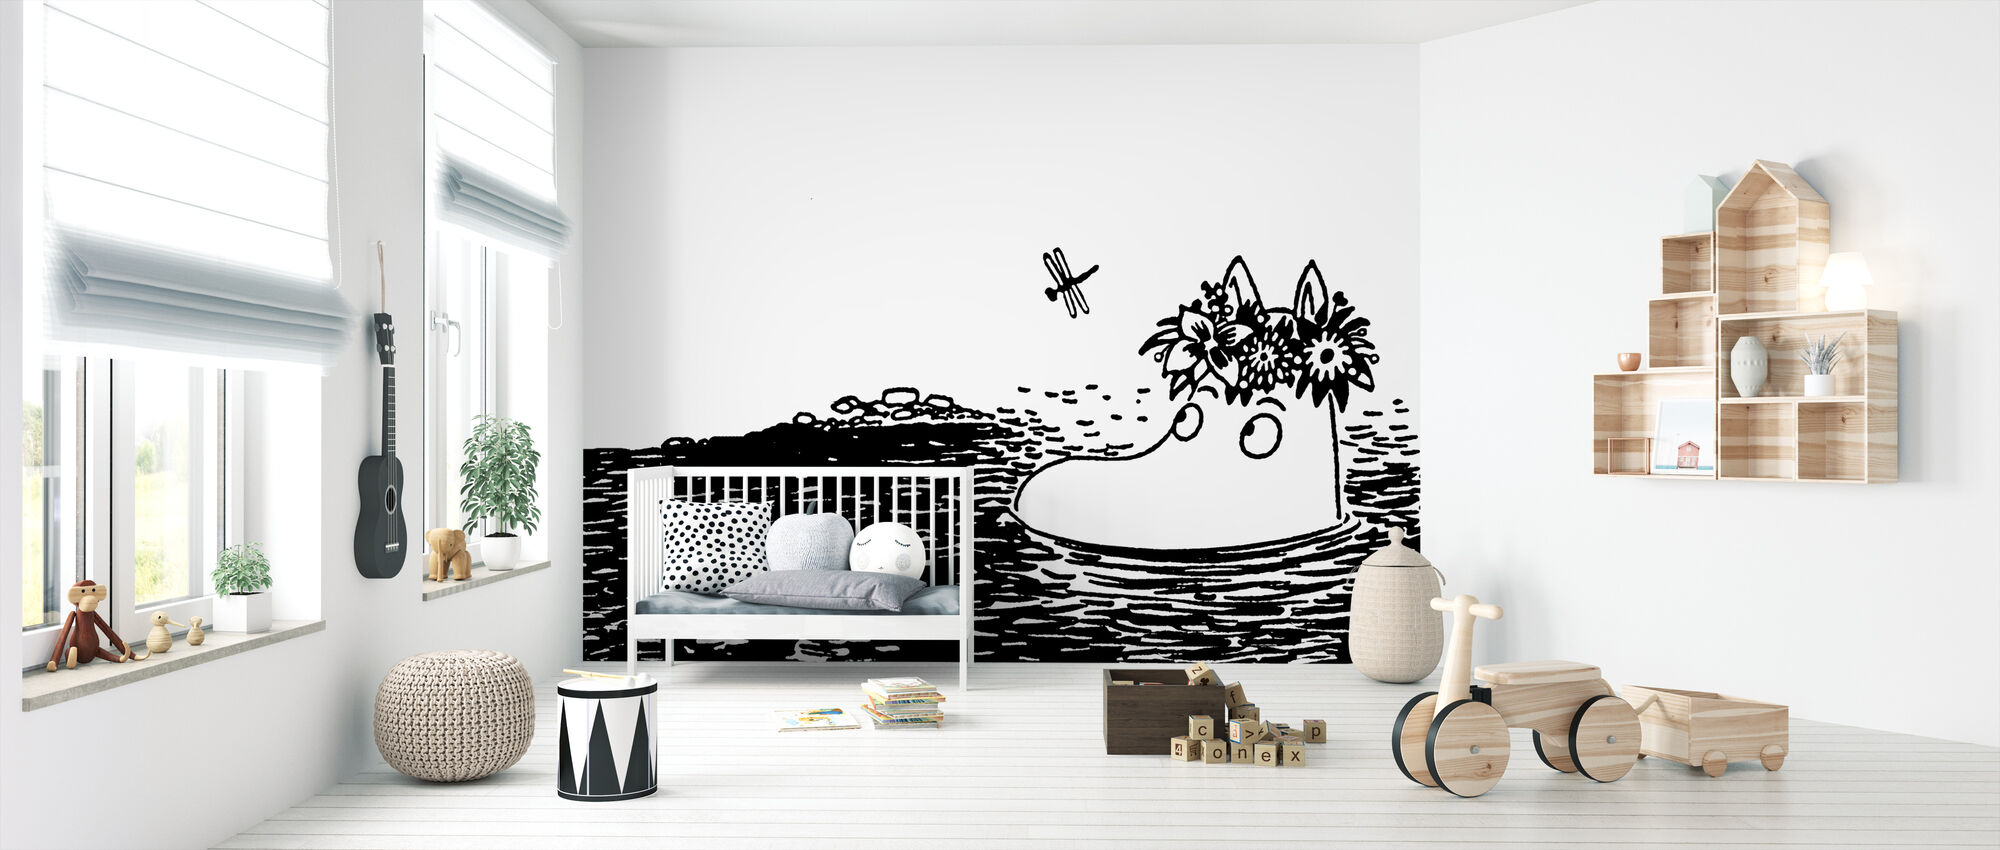 Moomin Contemplating - Wallpaper - Nursery